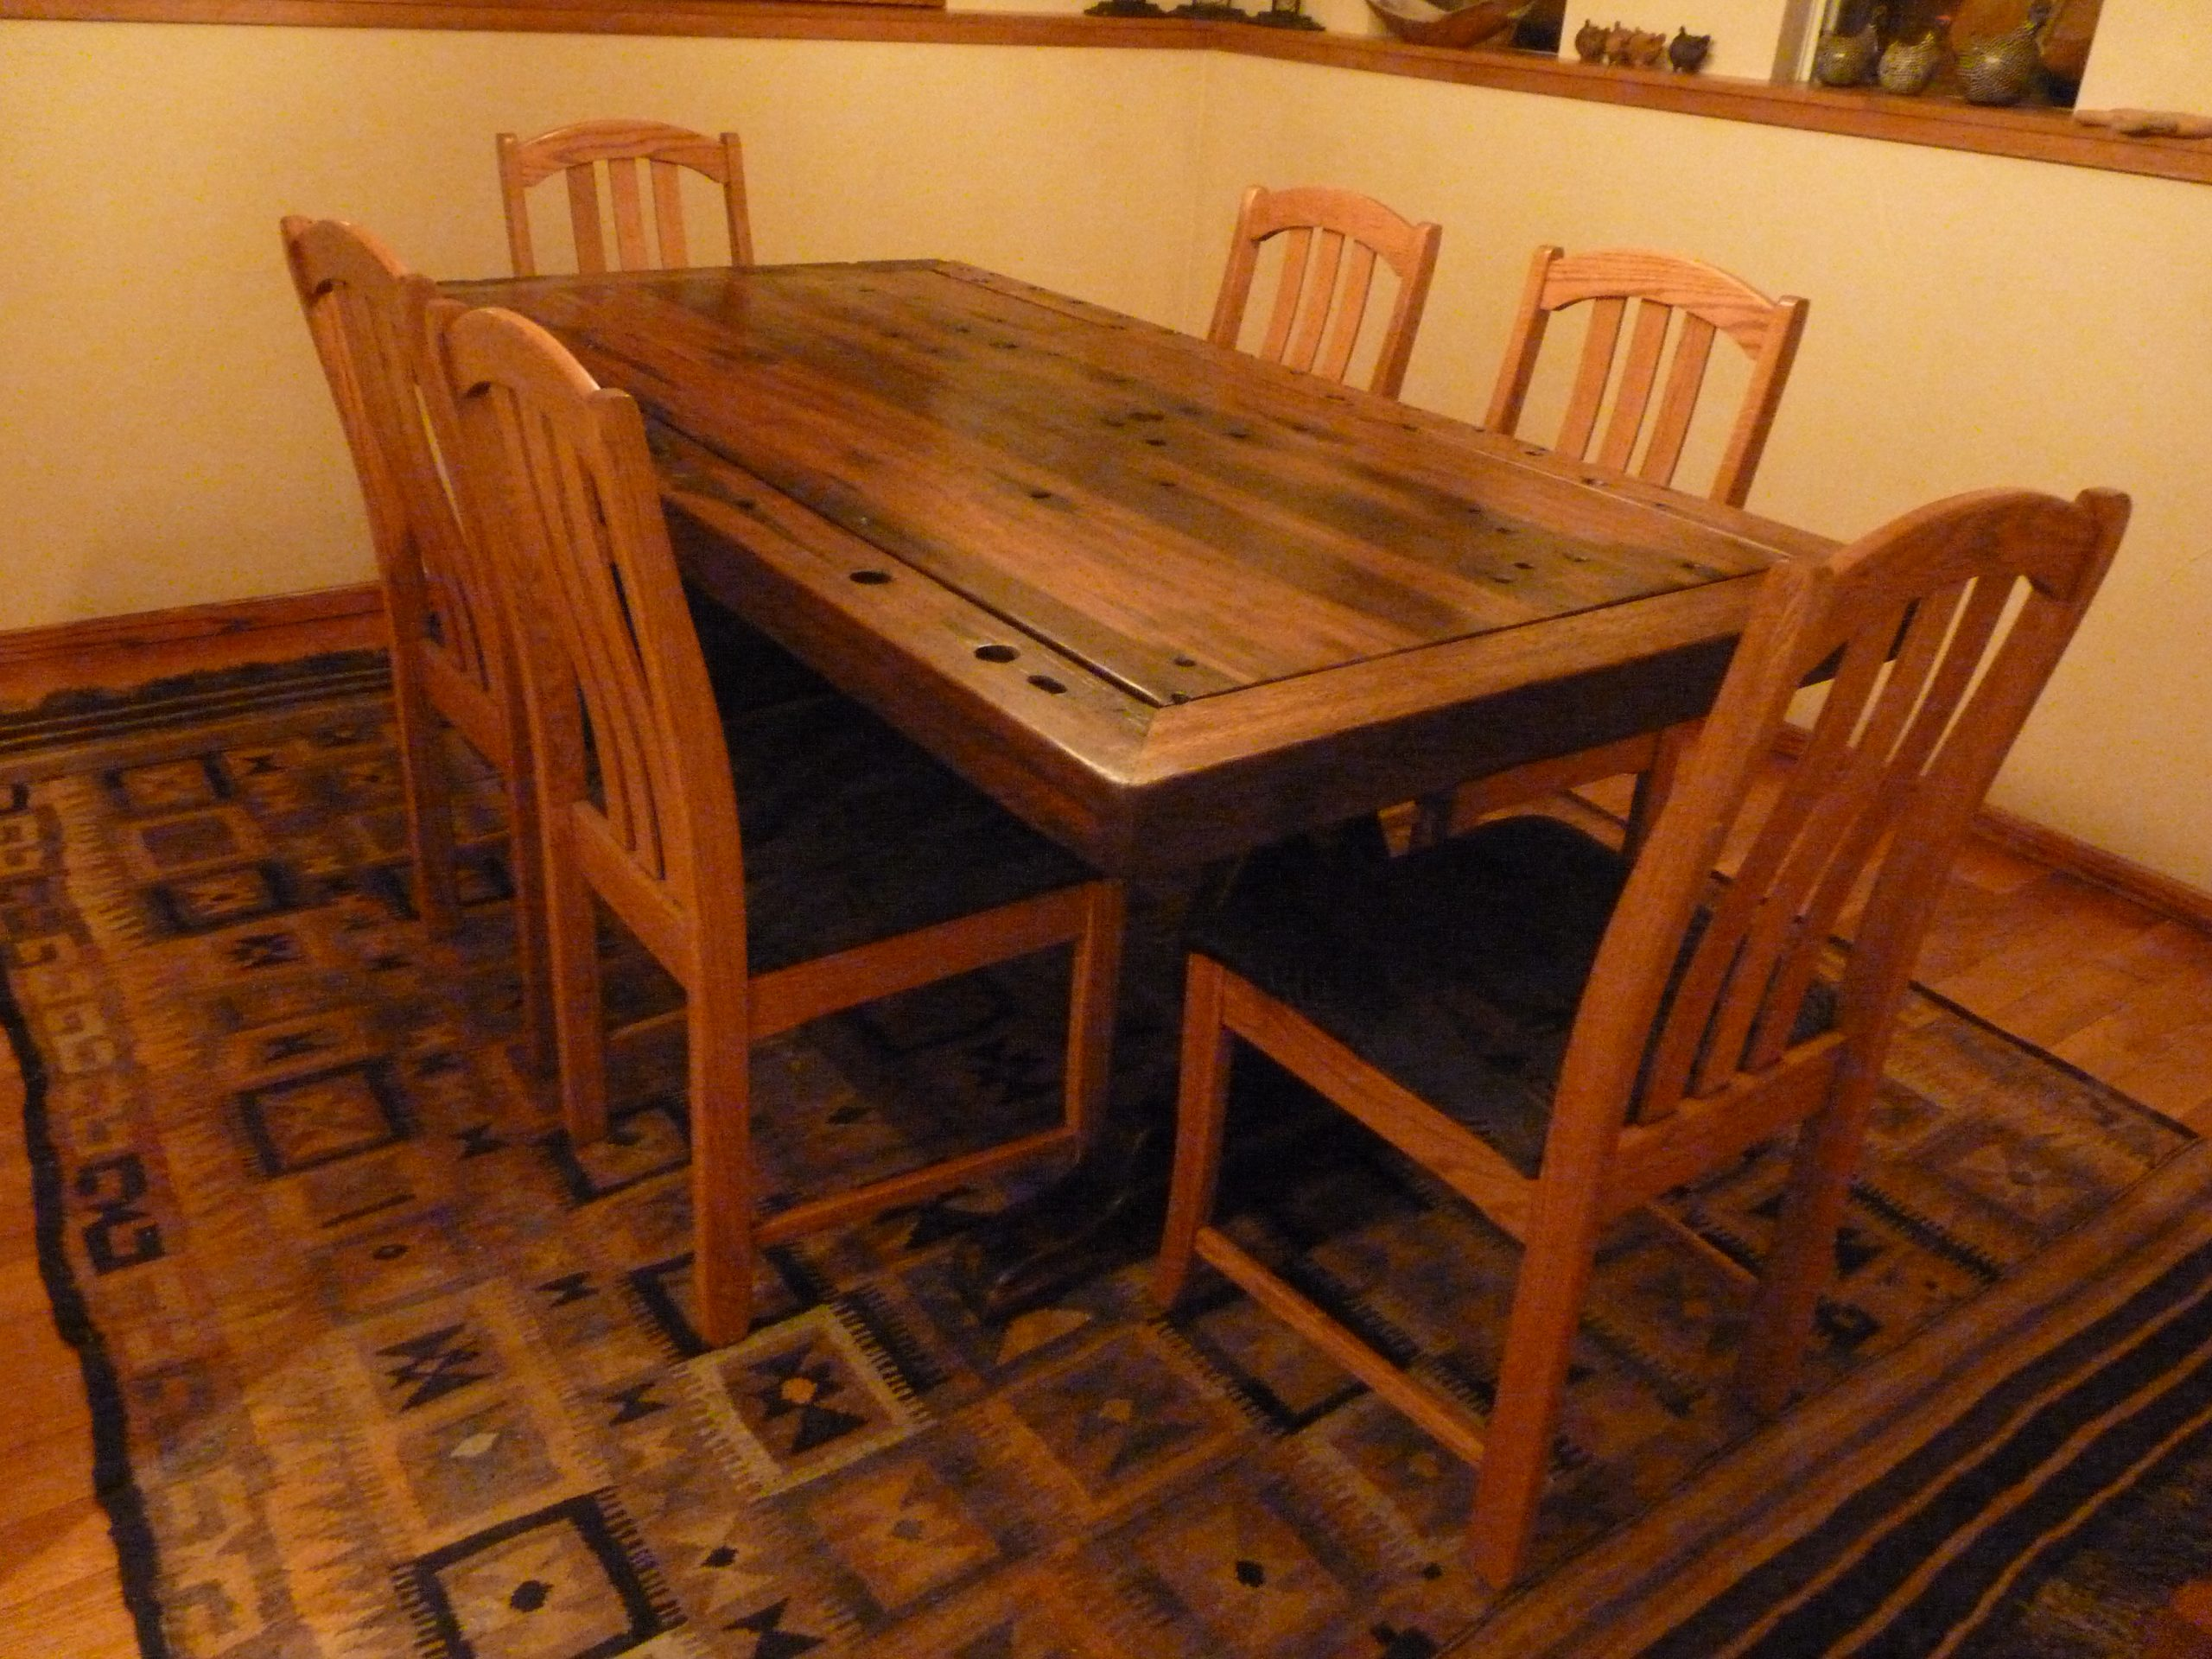 PS9404-TOP-CC-CB-1 Reclaimed Old Boat Wood Furniture